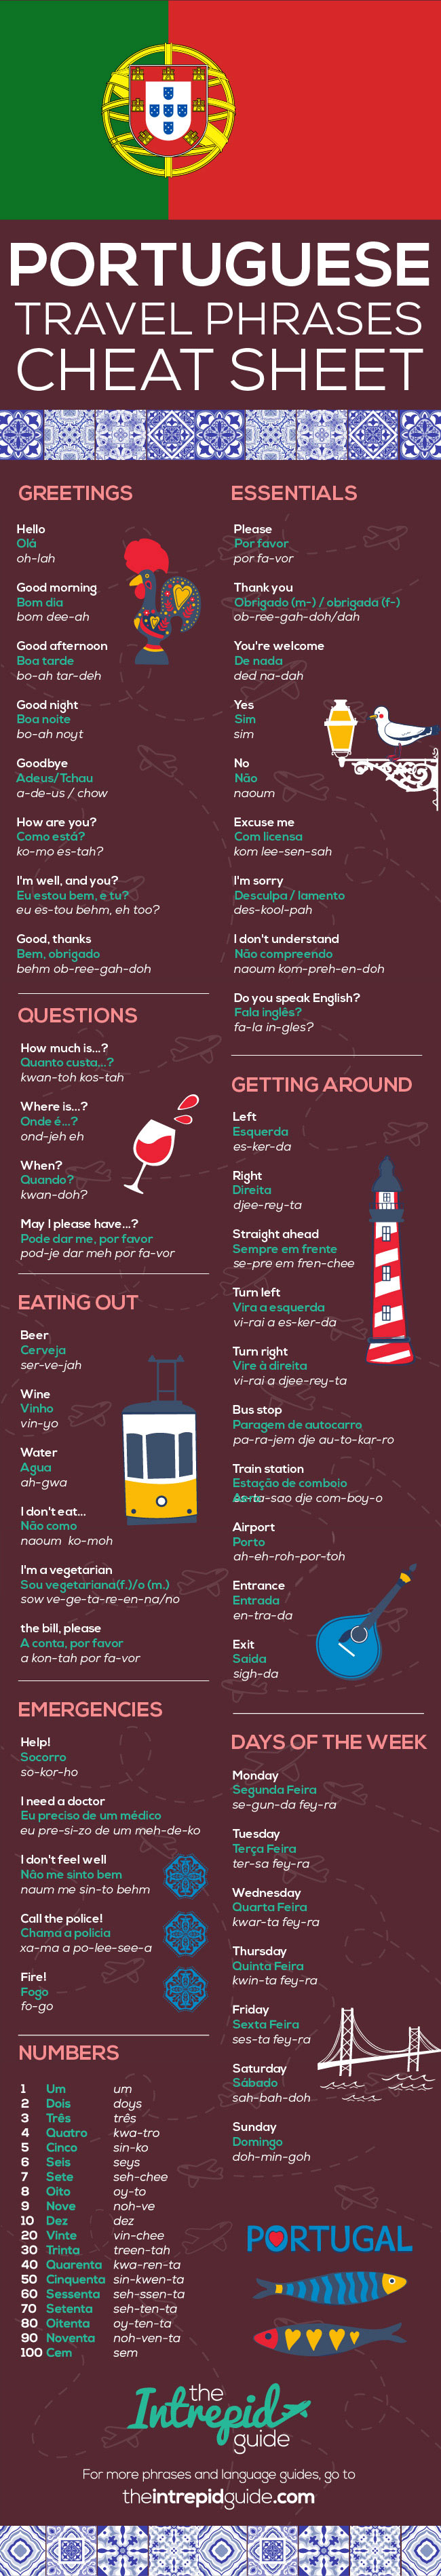 Useful Portuguese phrases and travel phrase guide